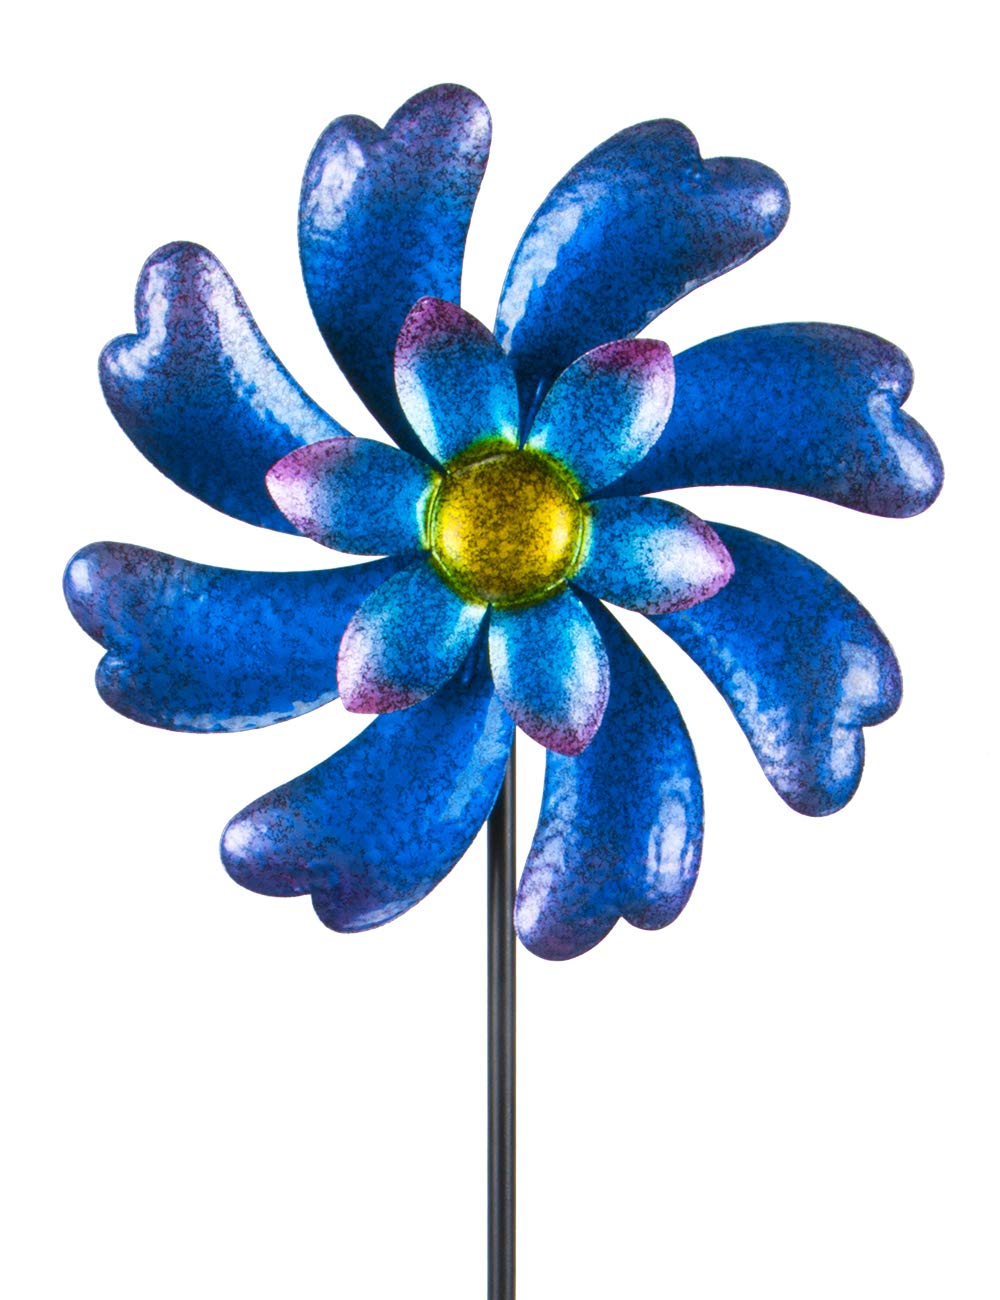 MUMTOP Wind Spinner 45'' Wind Sculptures for Patio Lawn and Garden Let You Feel Different Visual Effects and Relax Your Mood (Blue) by MUMTOP